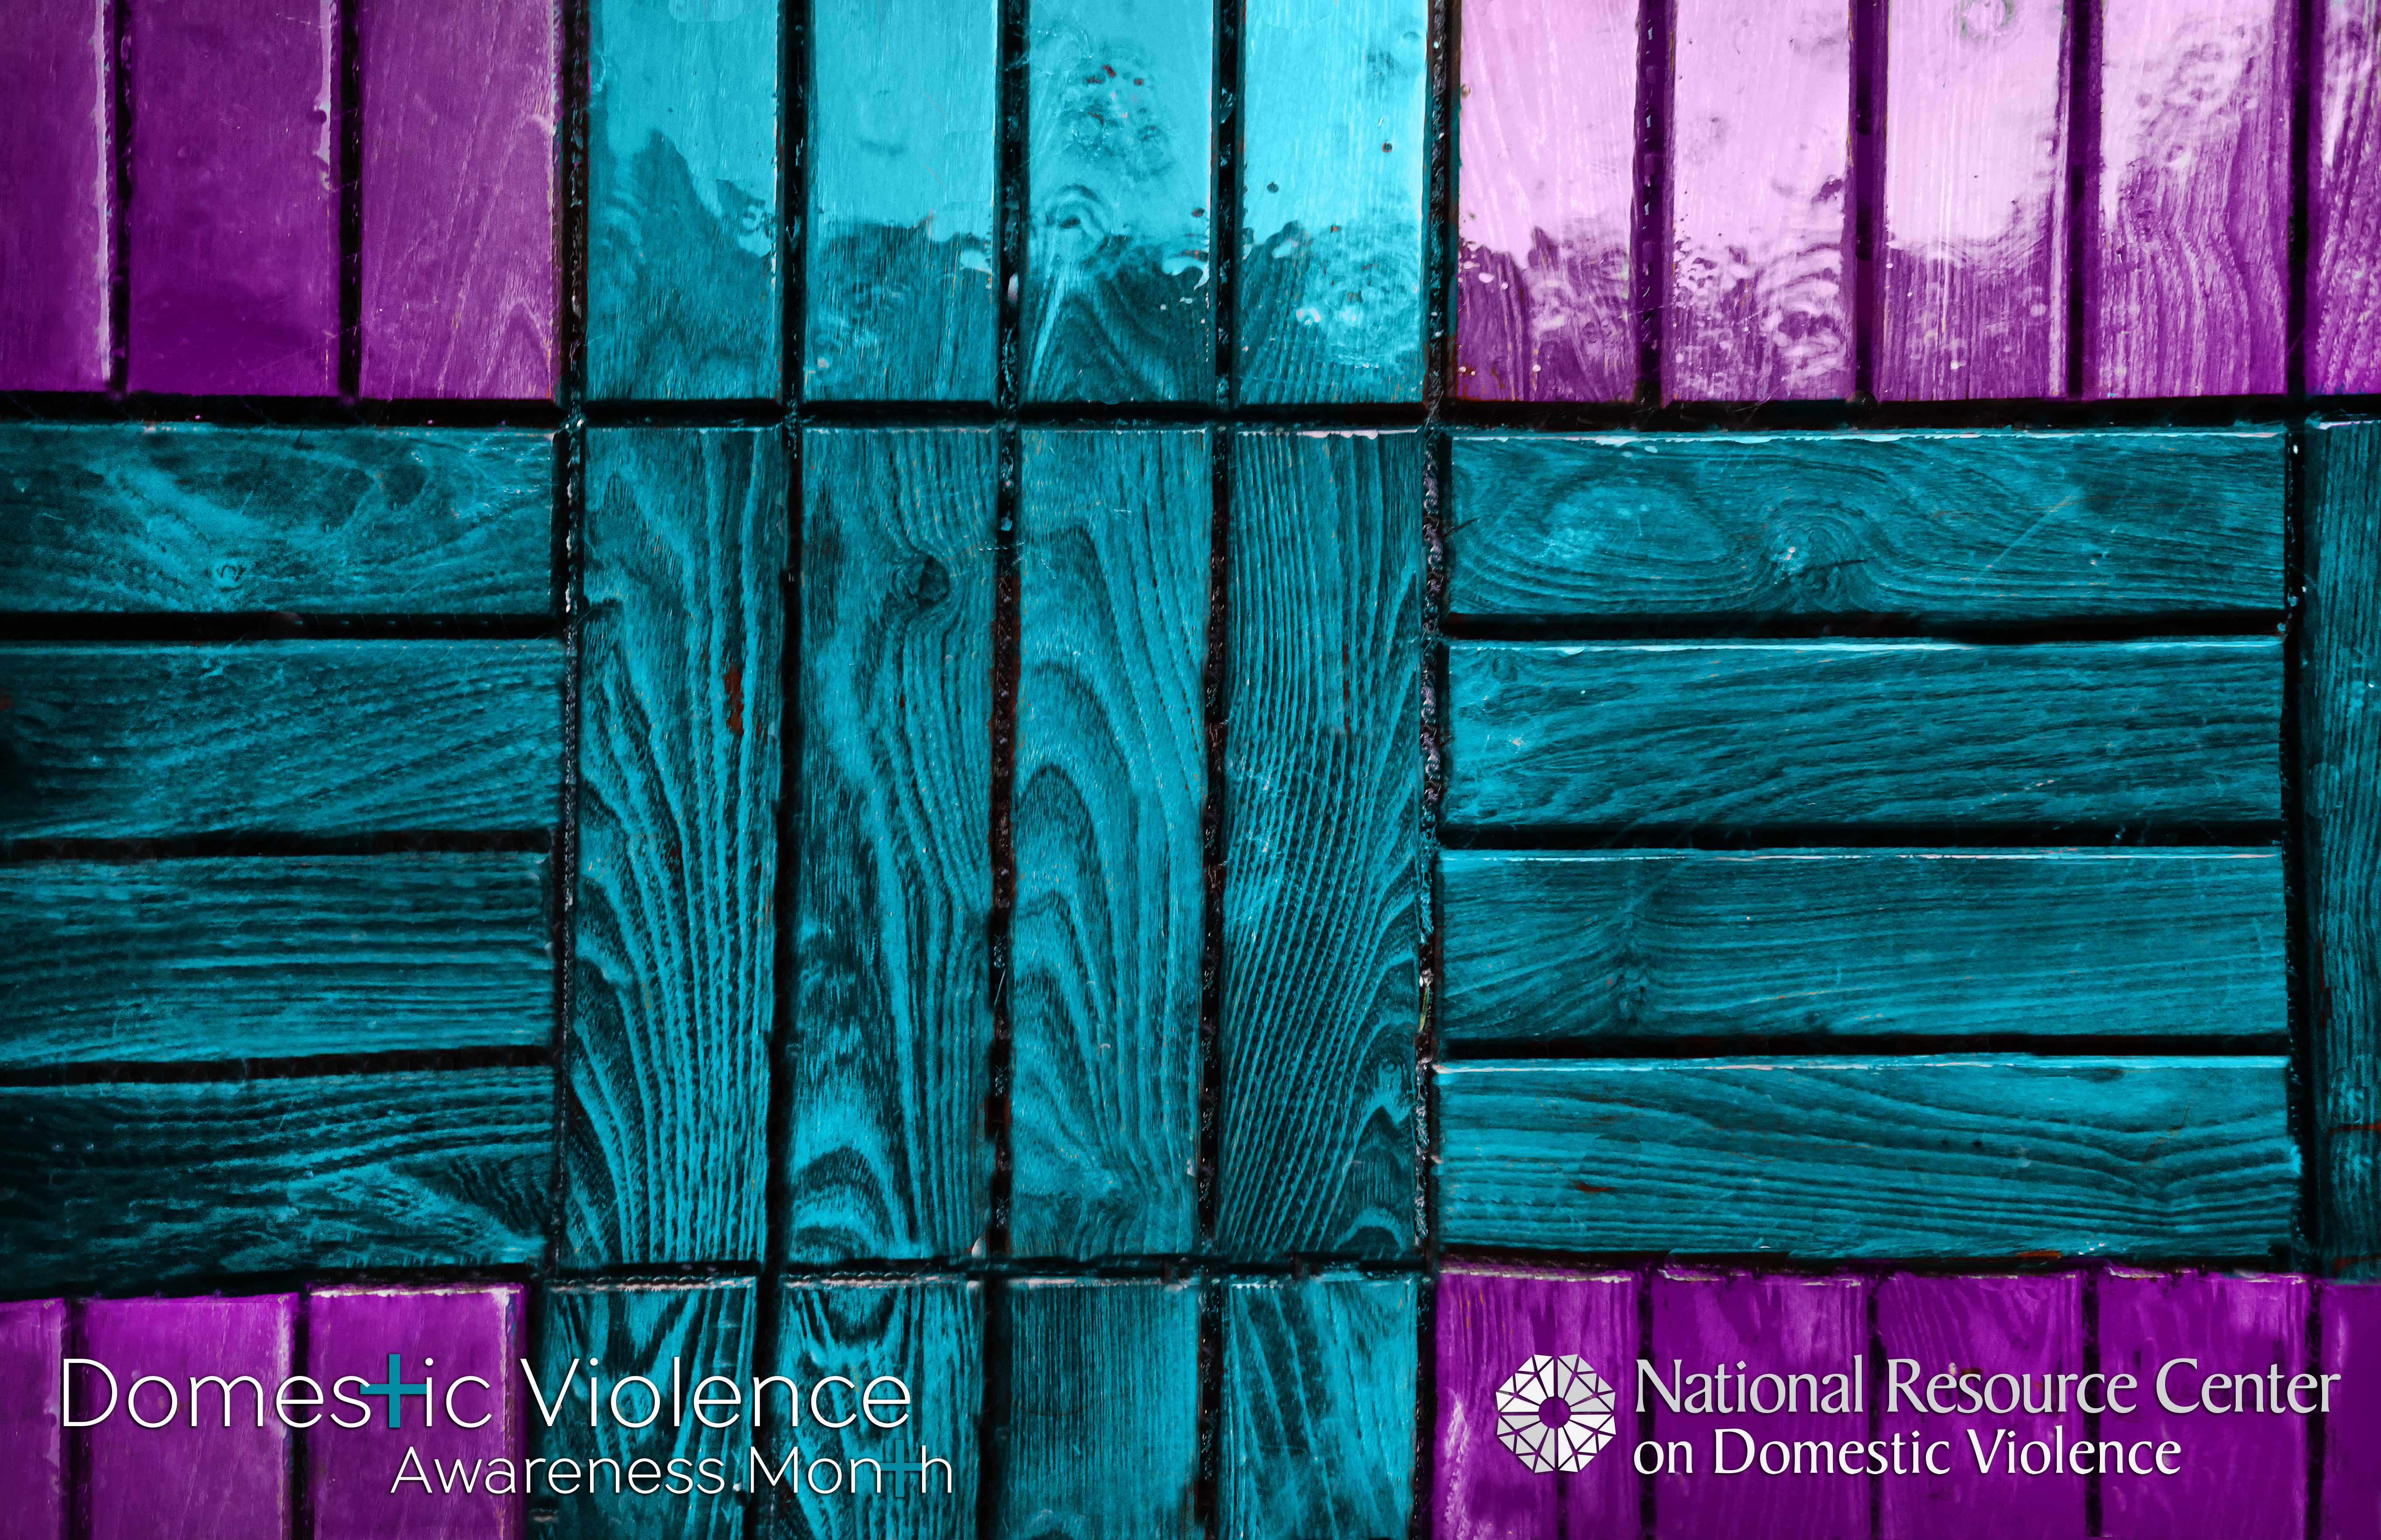 Purple stained wooden floor with teal stained wooden floor with NRCDV and DVAM logos on top